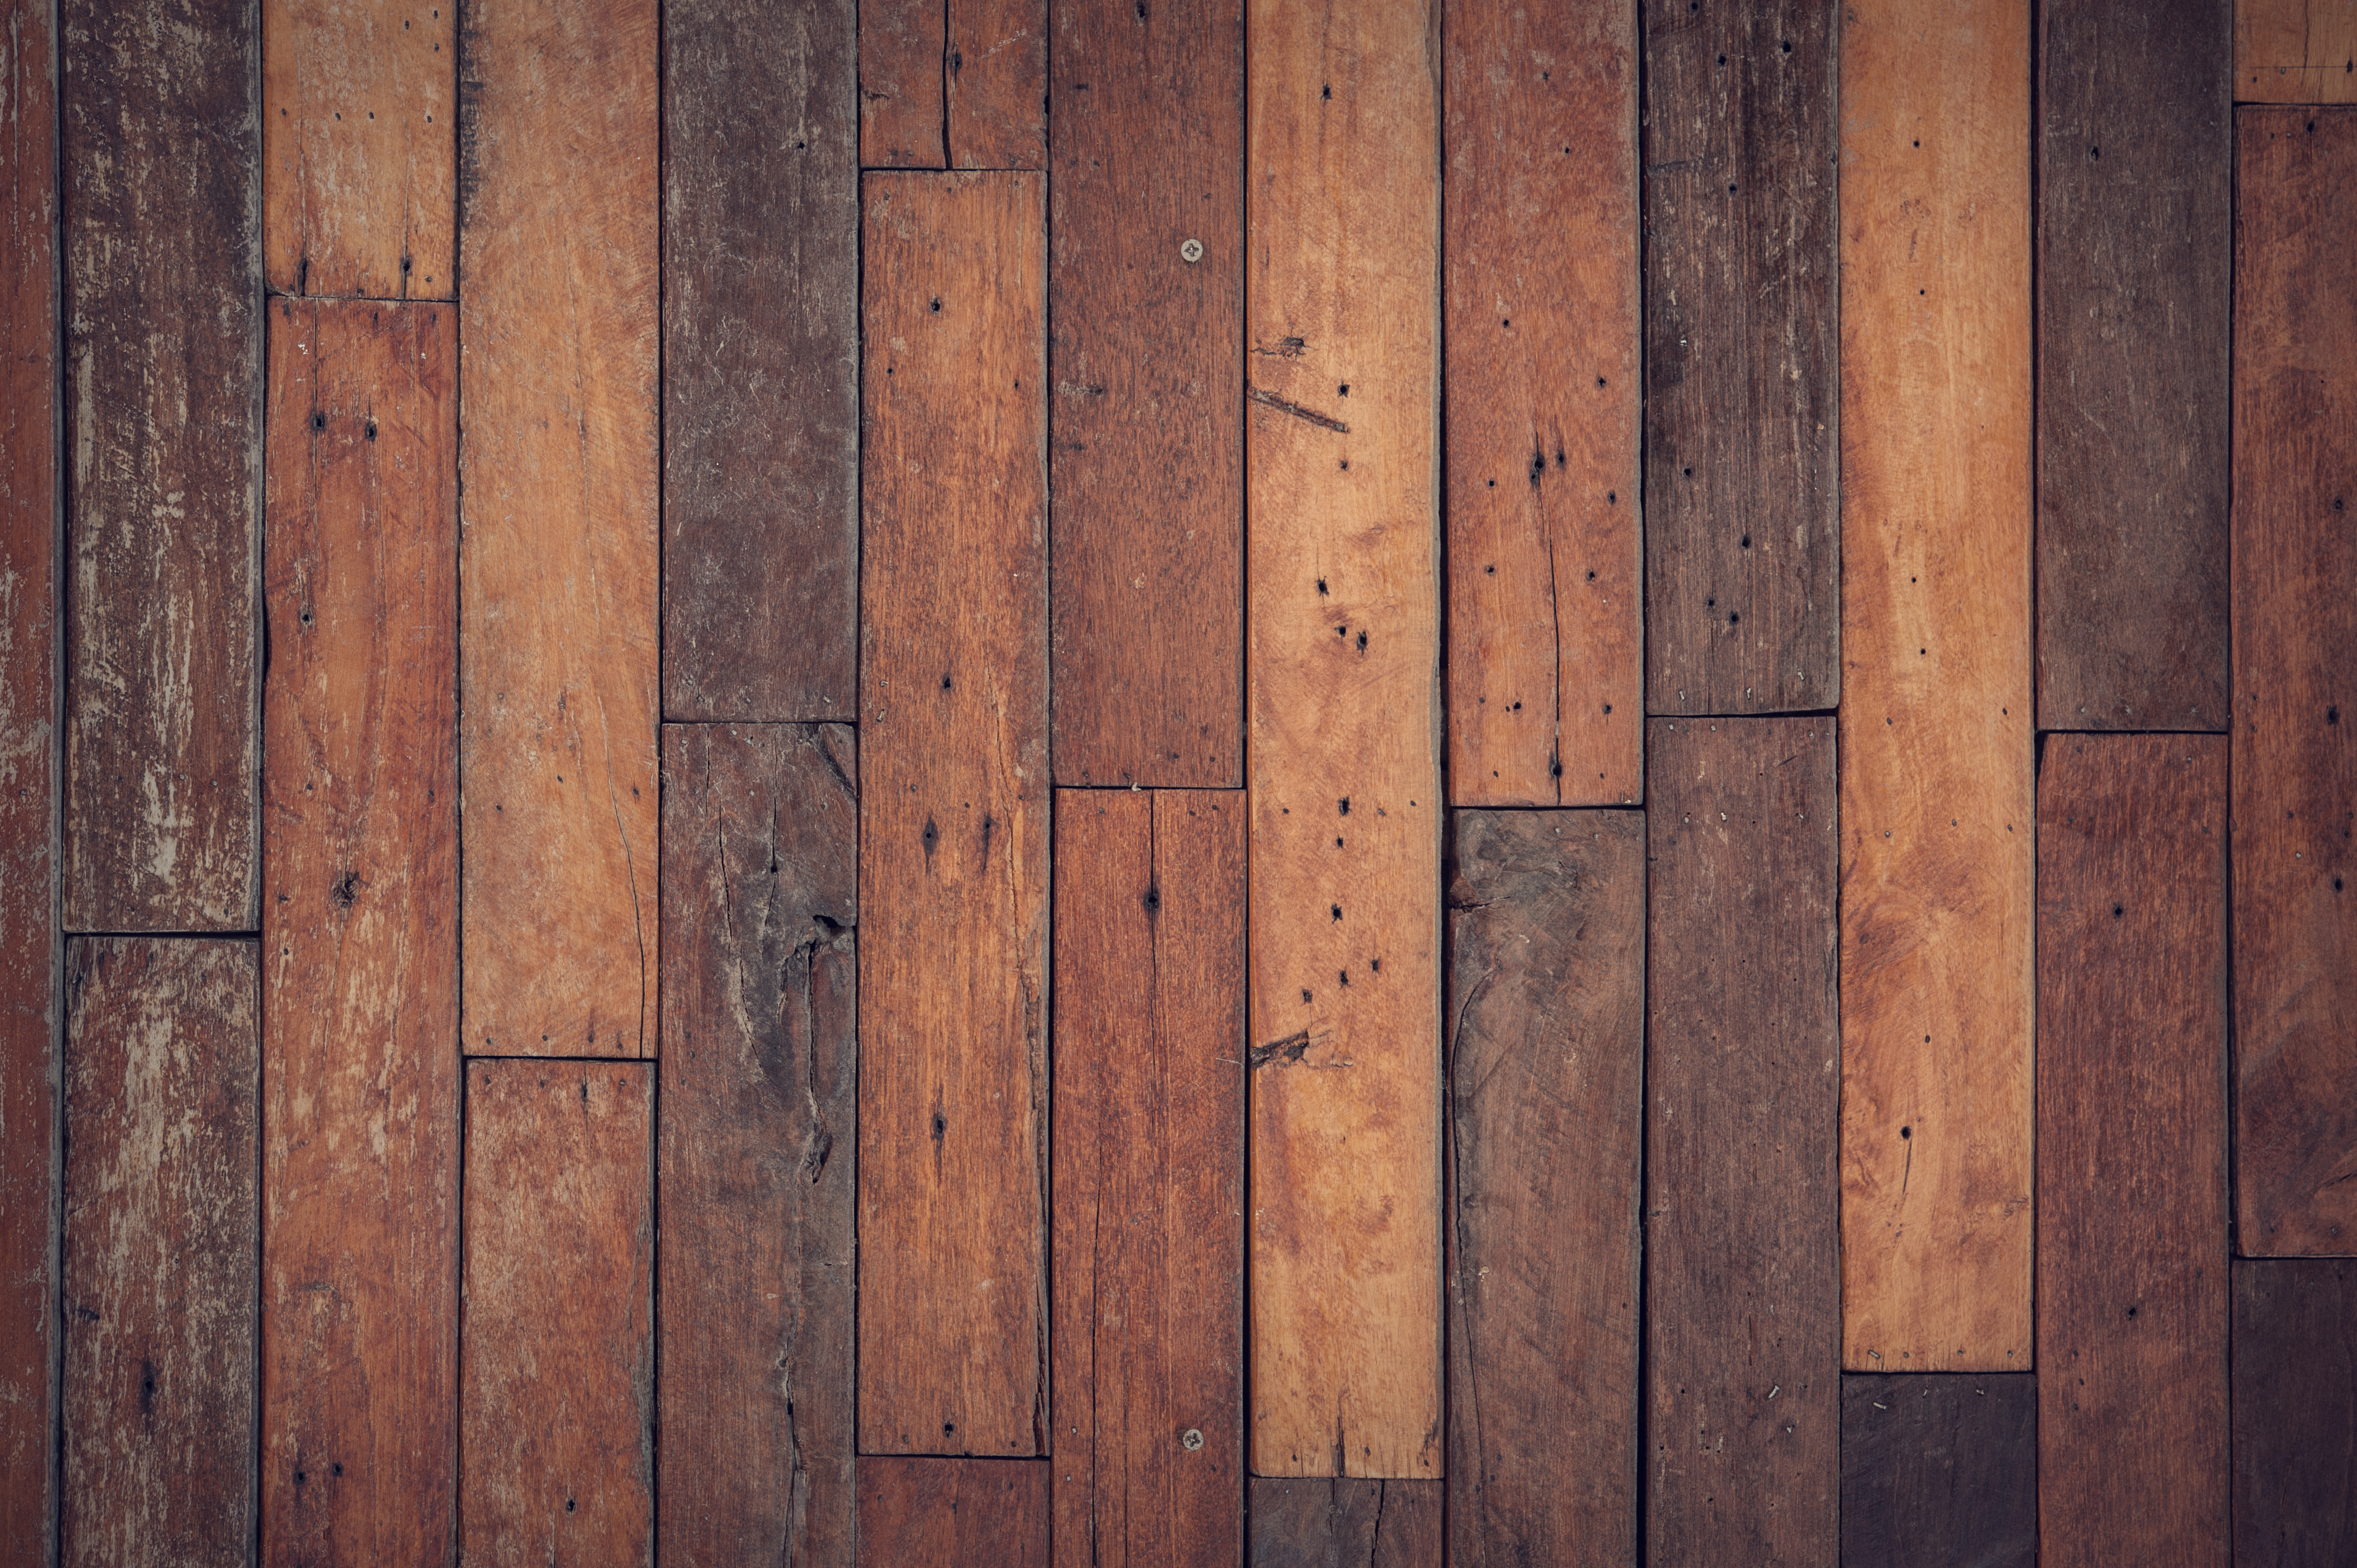 How to make your floor lasting longer using wood floor finishes